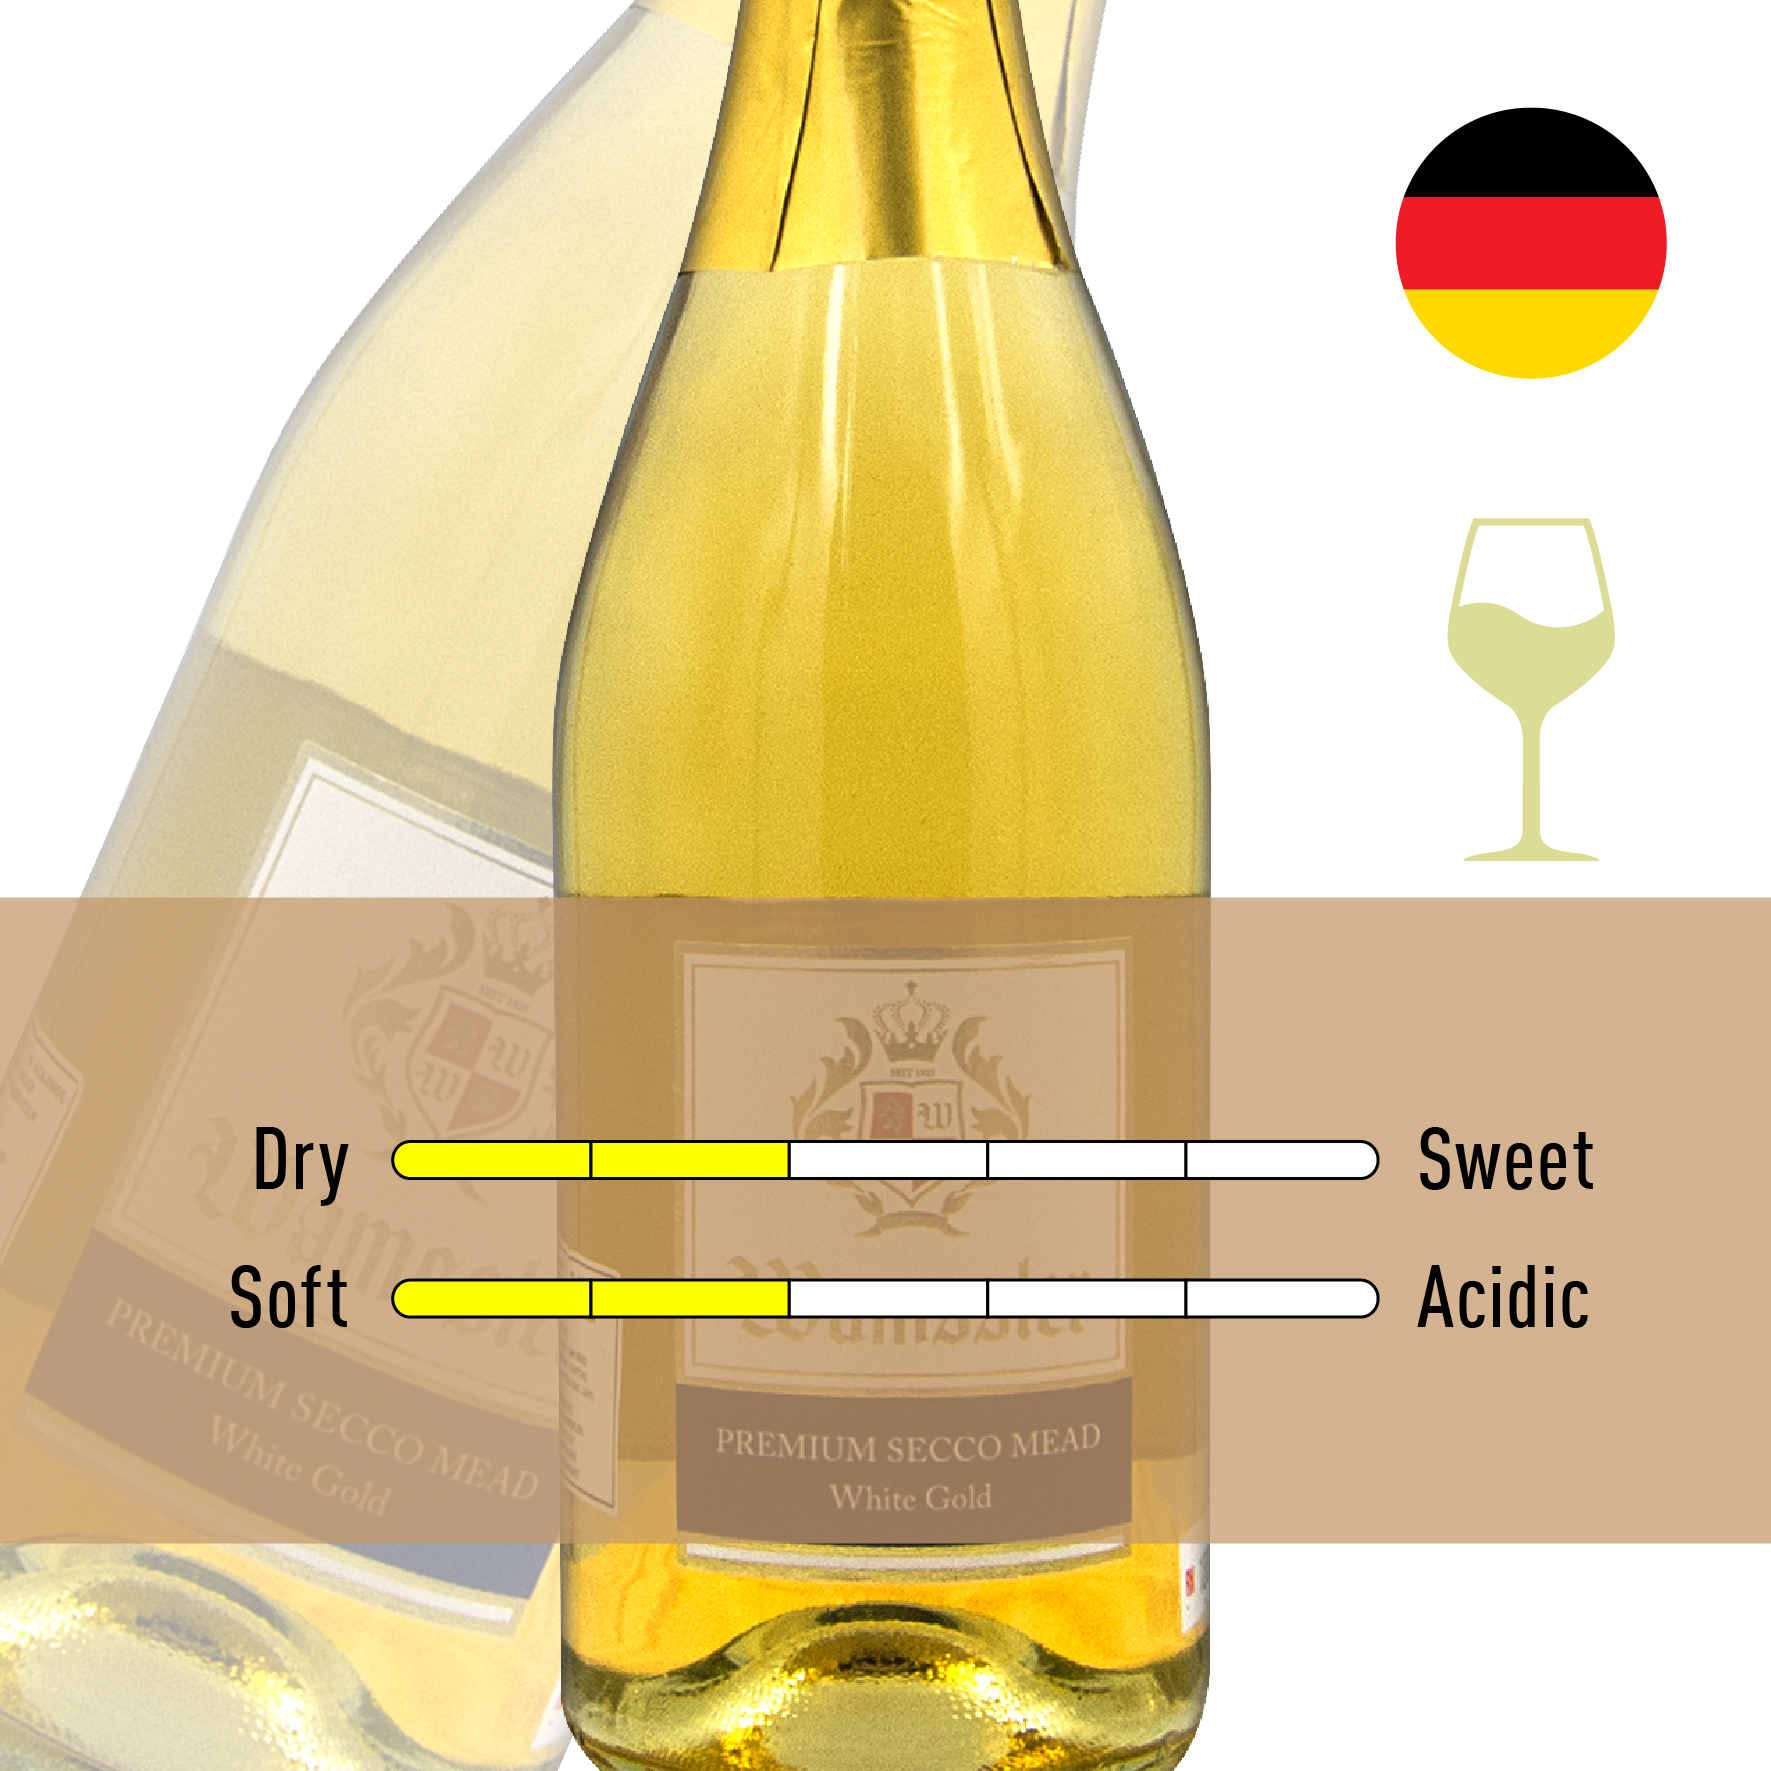 5-Wamssler Finest Secco Weiss Gold (White Gold)-Germany-02.jpg